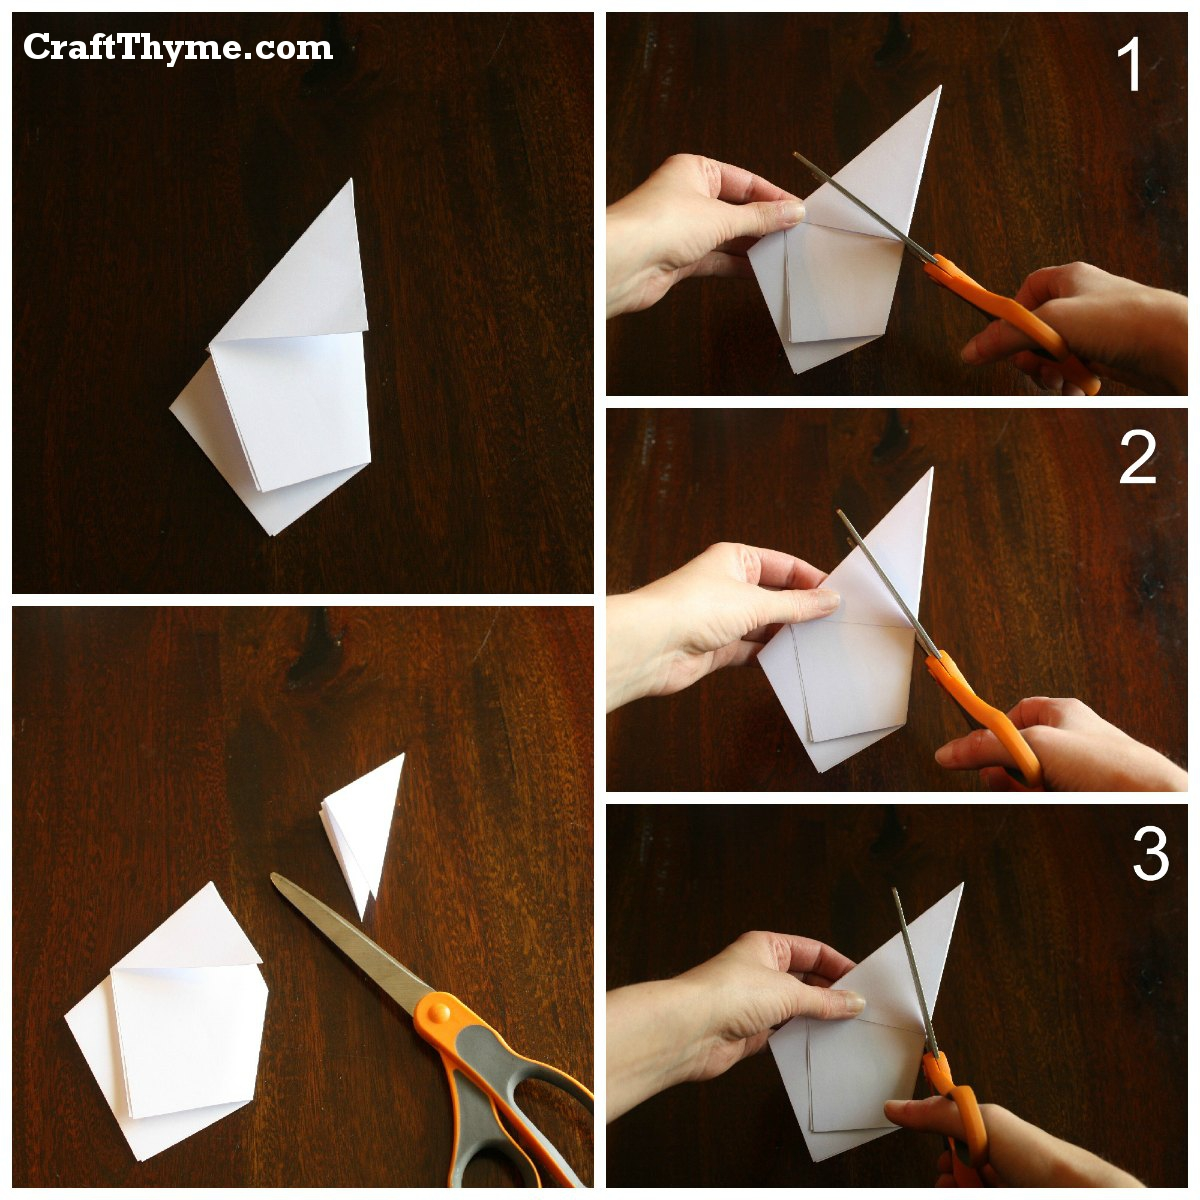 Paper stars how to make 5 pointed 3 d craft thyme - We Won T Discuss How The Waste Paper Makes Me Cringe